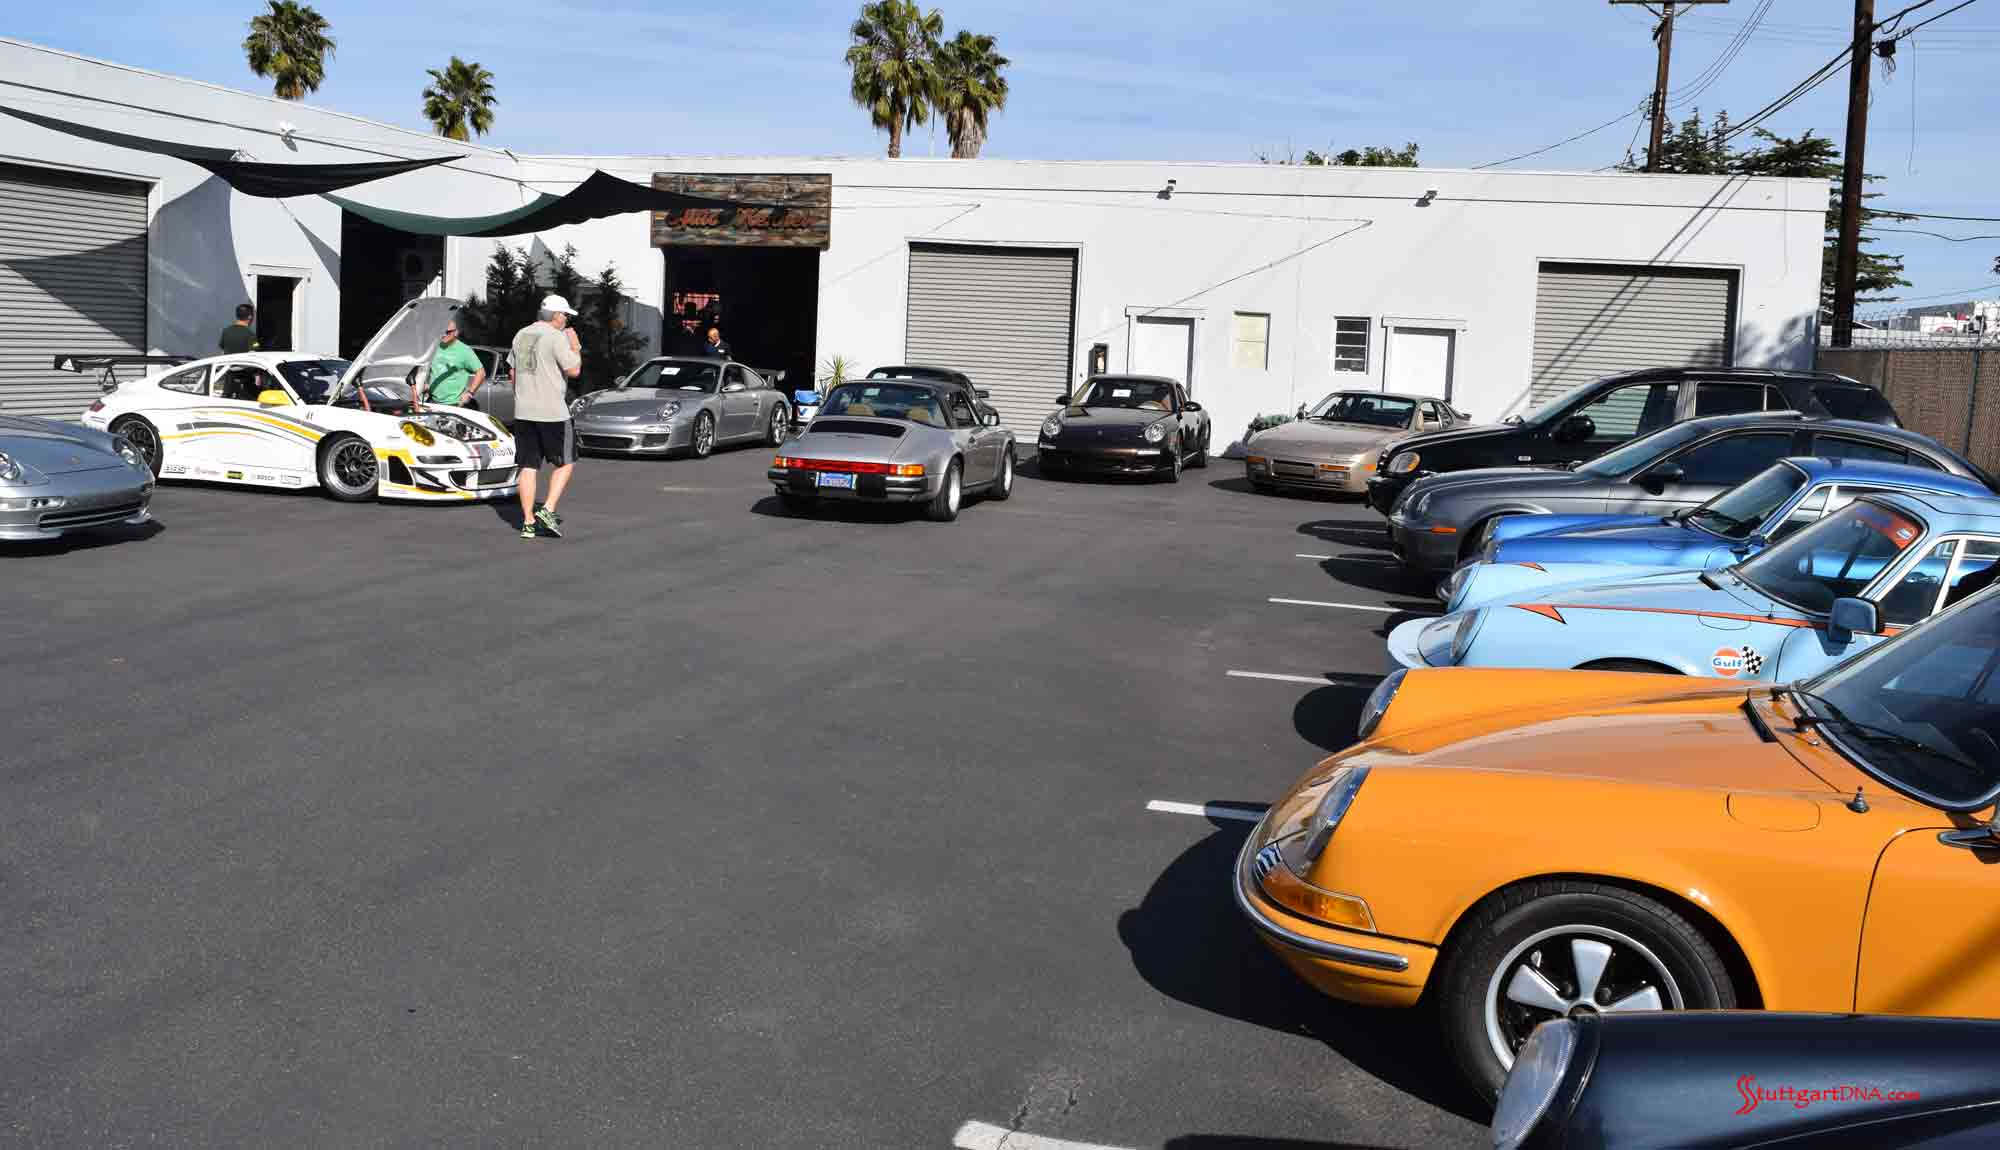 2017 Porsche L.A. Literature, Toy and Memorabilia Meet Weekend: Seen here is the Auto Kennel lot during its 2017 Lit Weekend Open House. Credit: StuttgartDNA